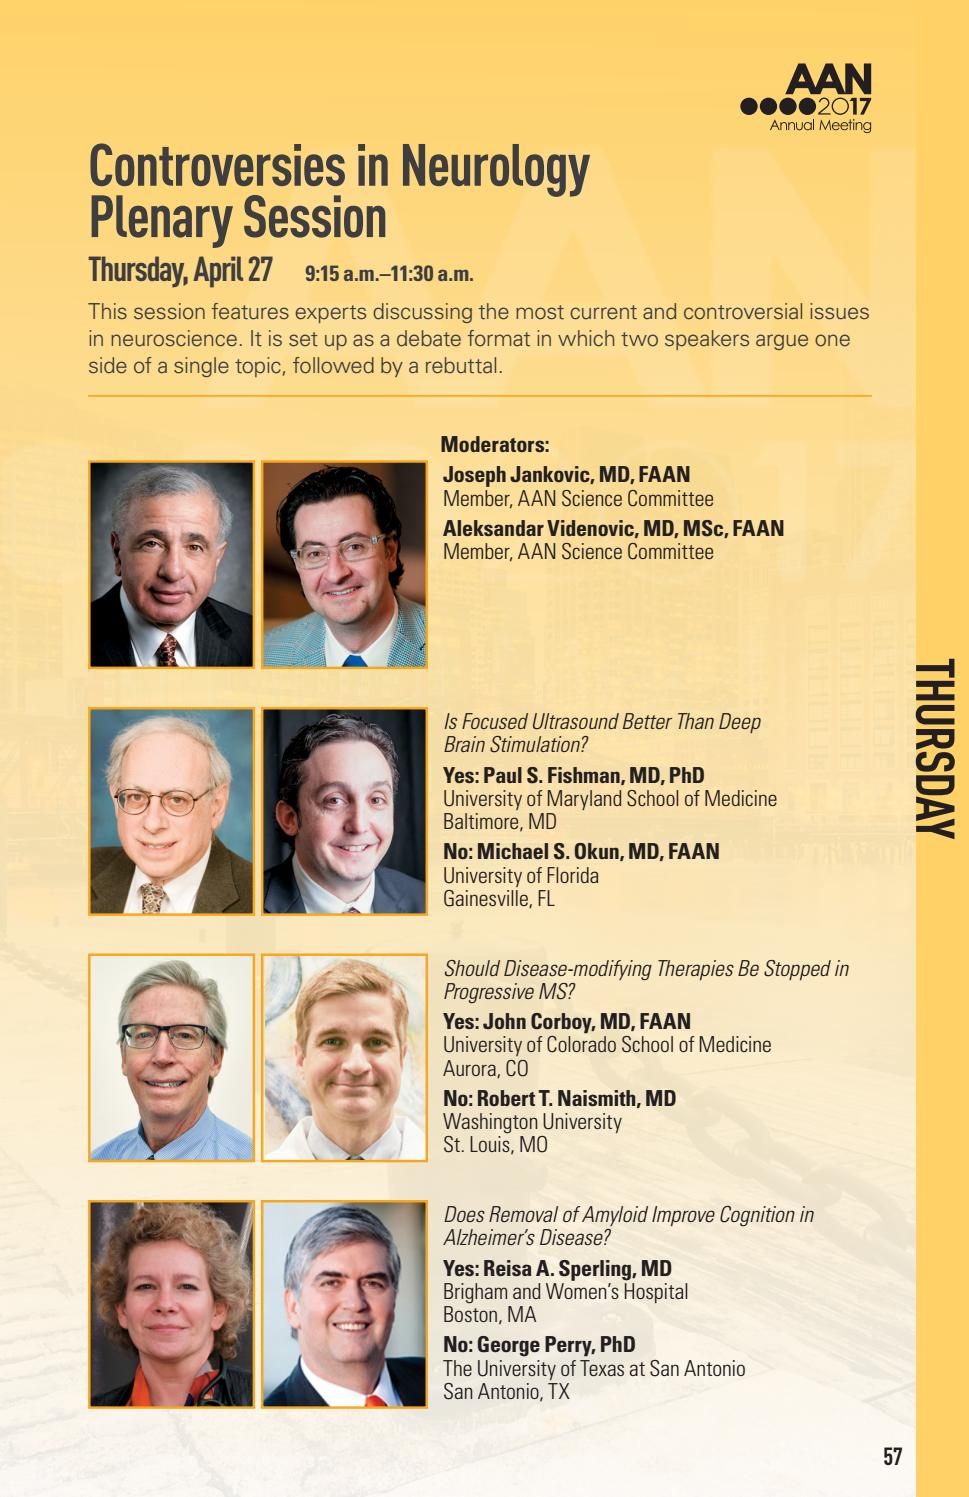 2017 Annual Meeting On-site Guide by American Academy of